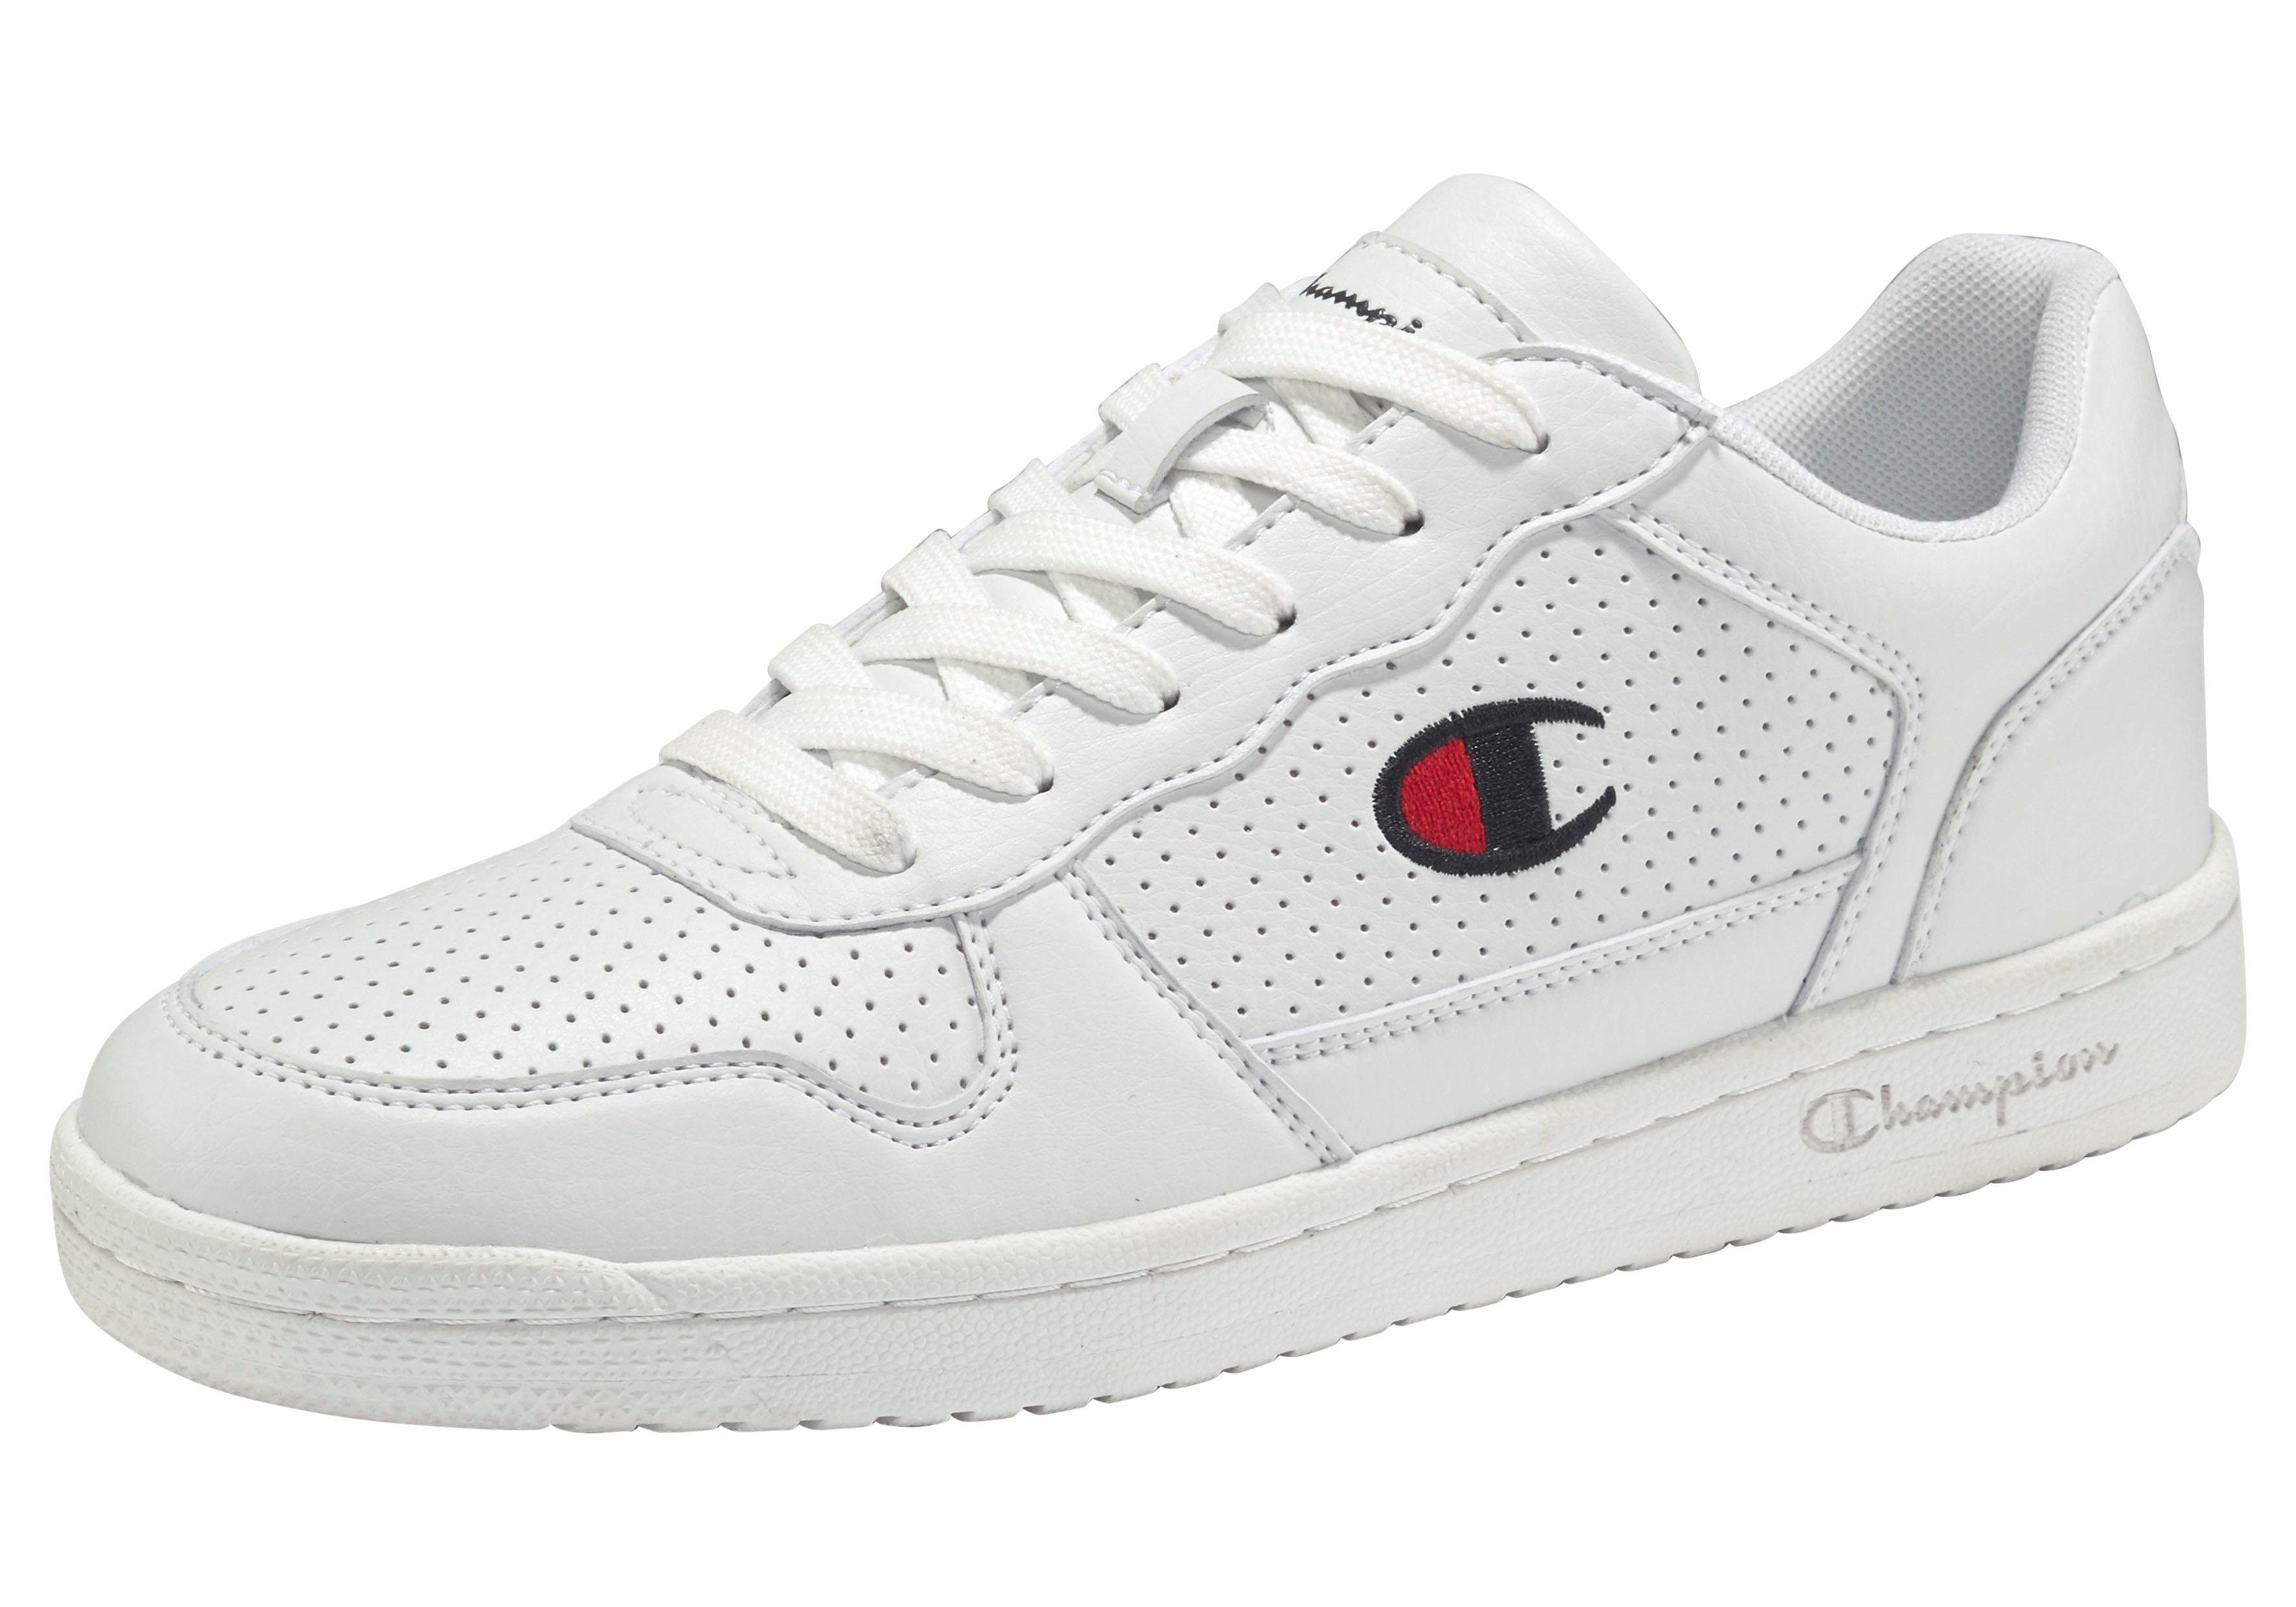 Champion Chicago Basket Low Sneaker kaufen  weiß